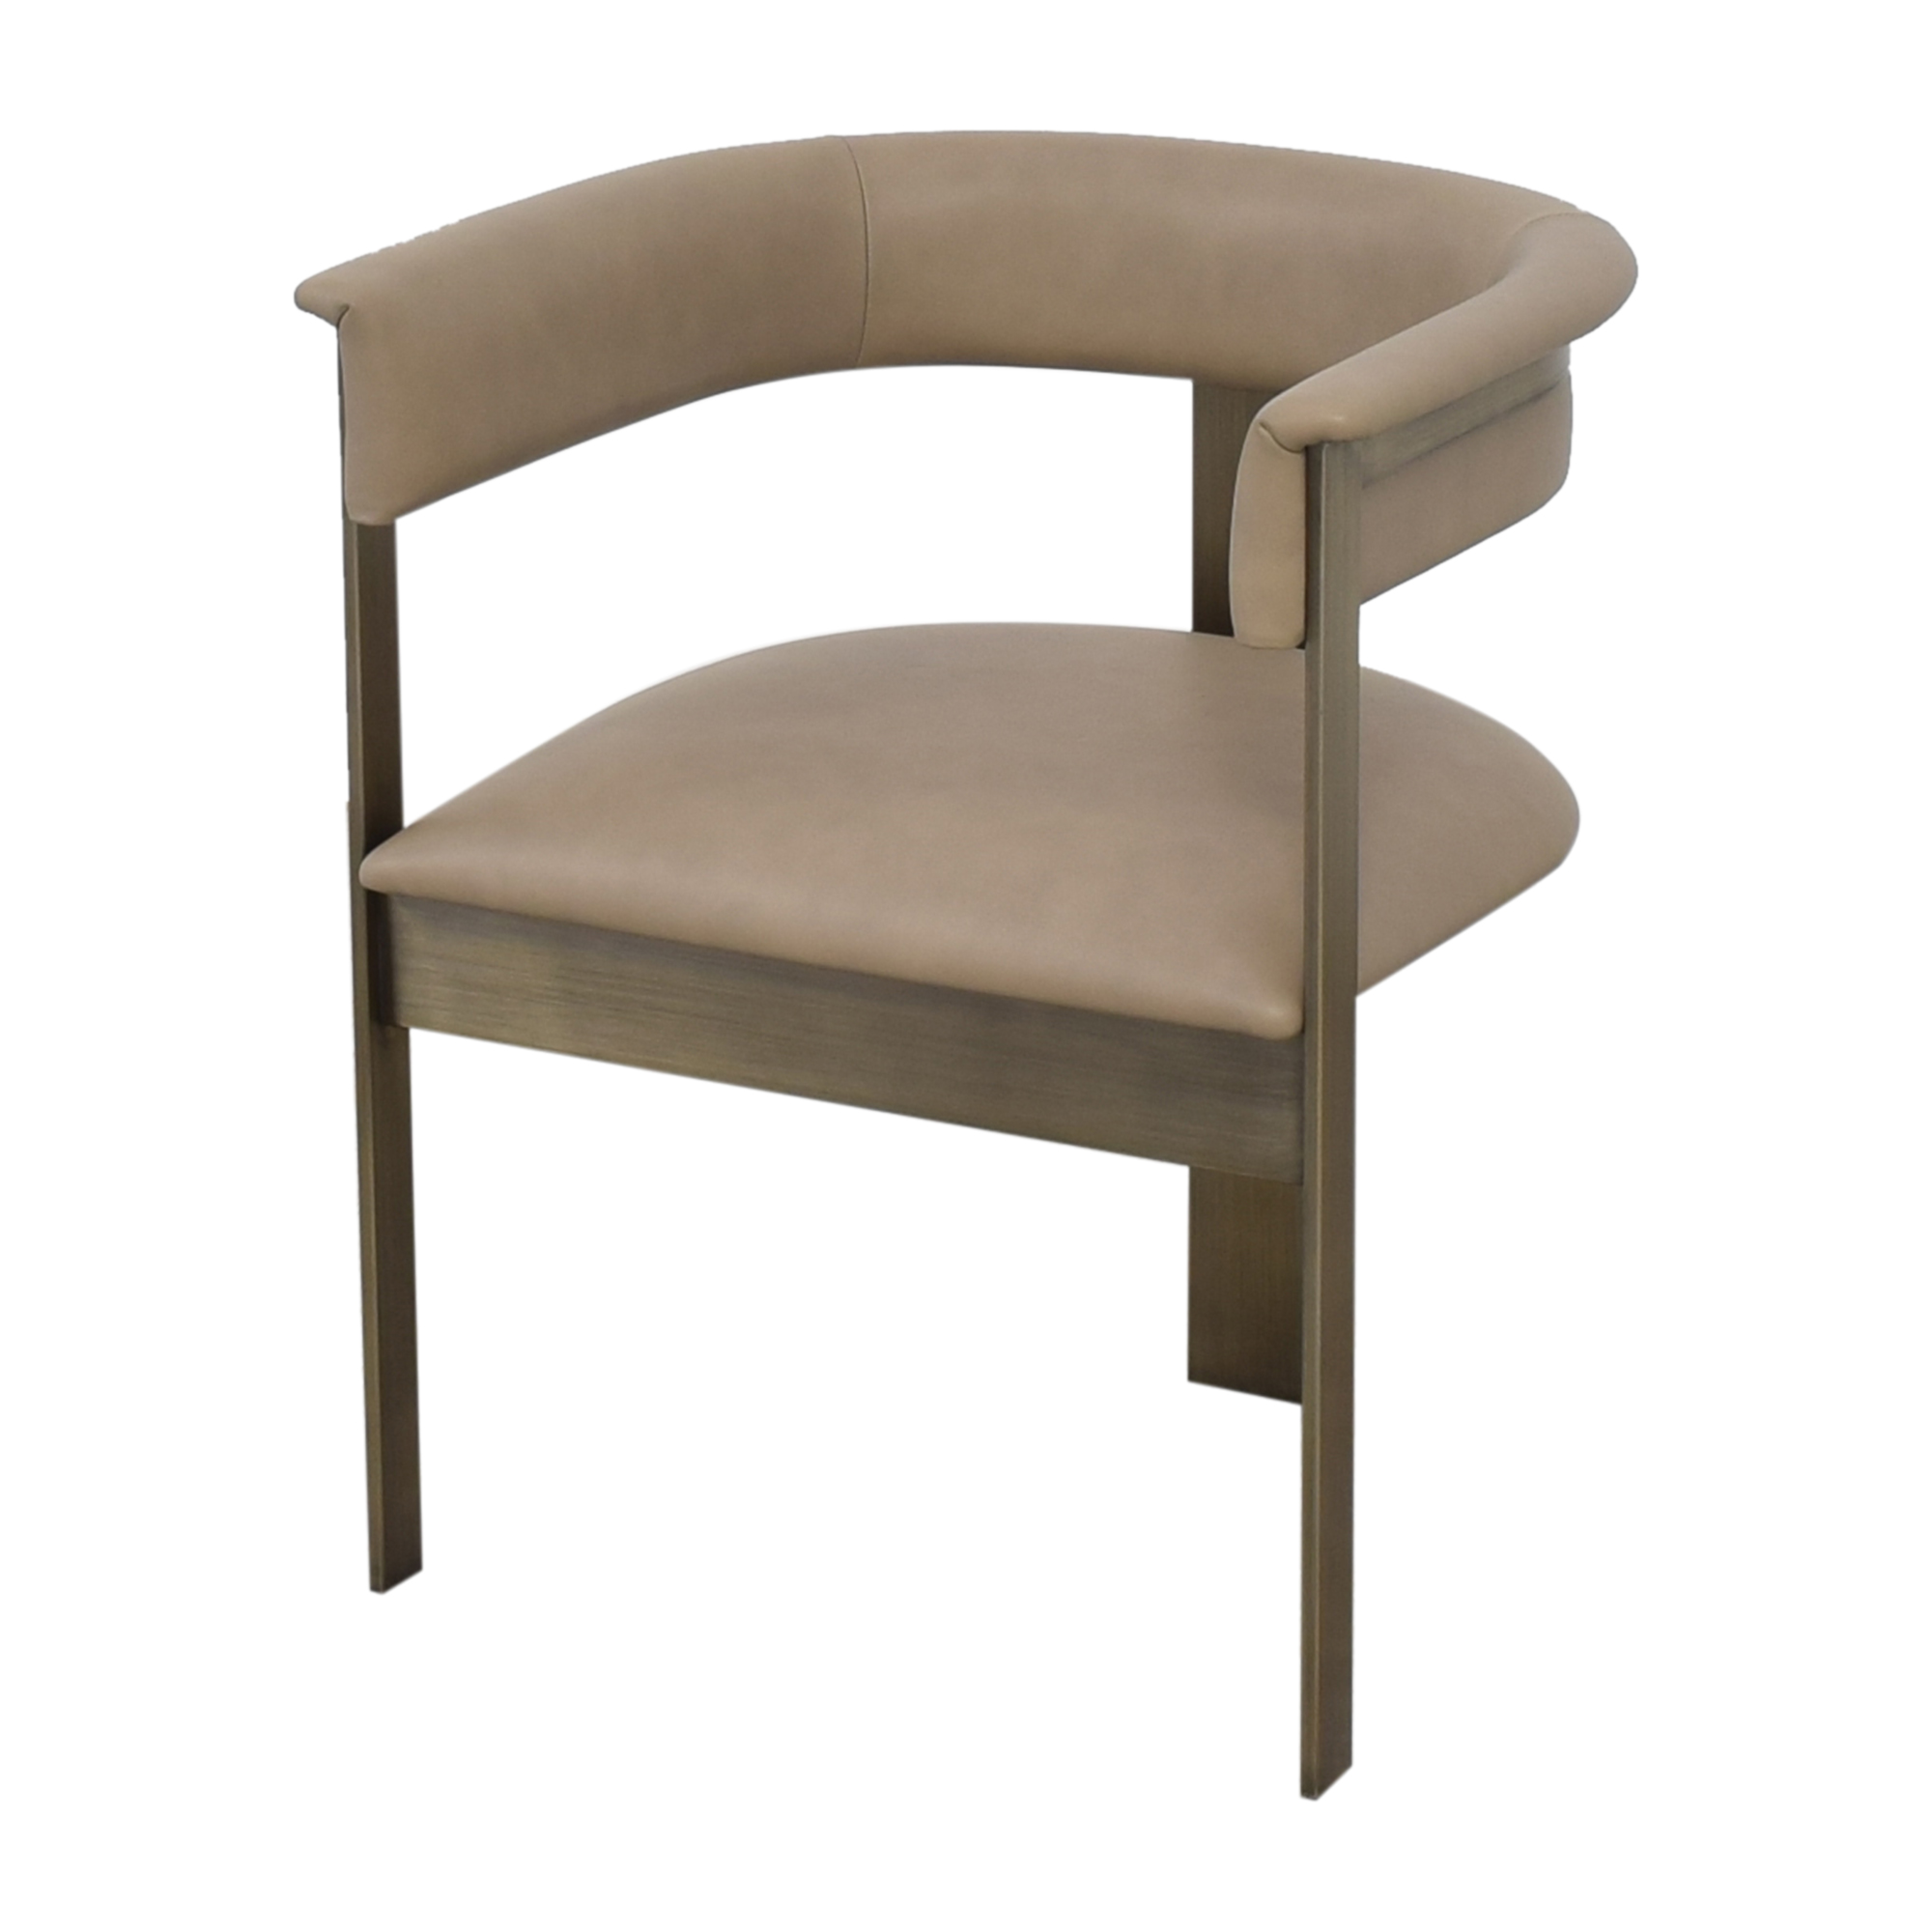 shop Interlude Home Darcy Dining Arm Chairs Interlude Home